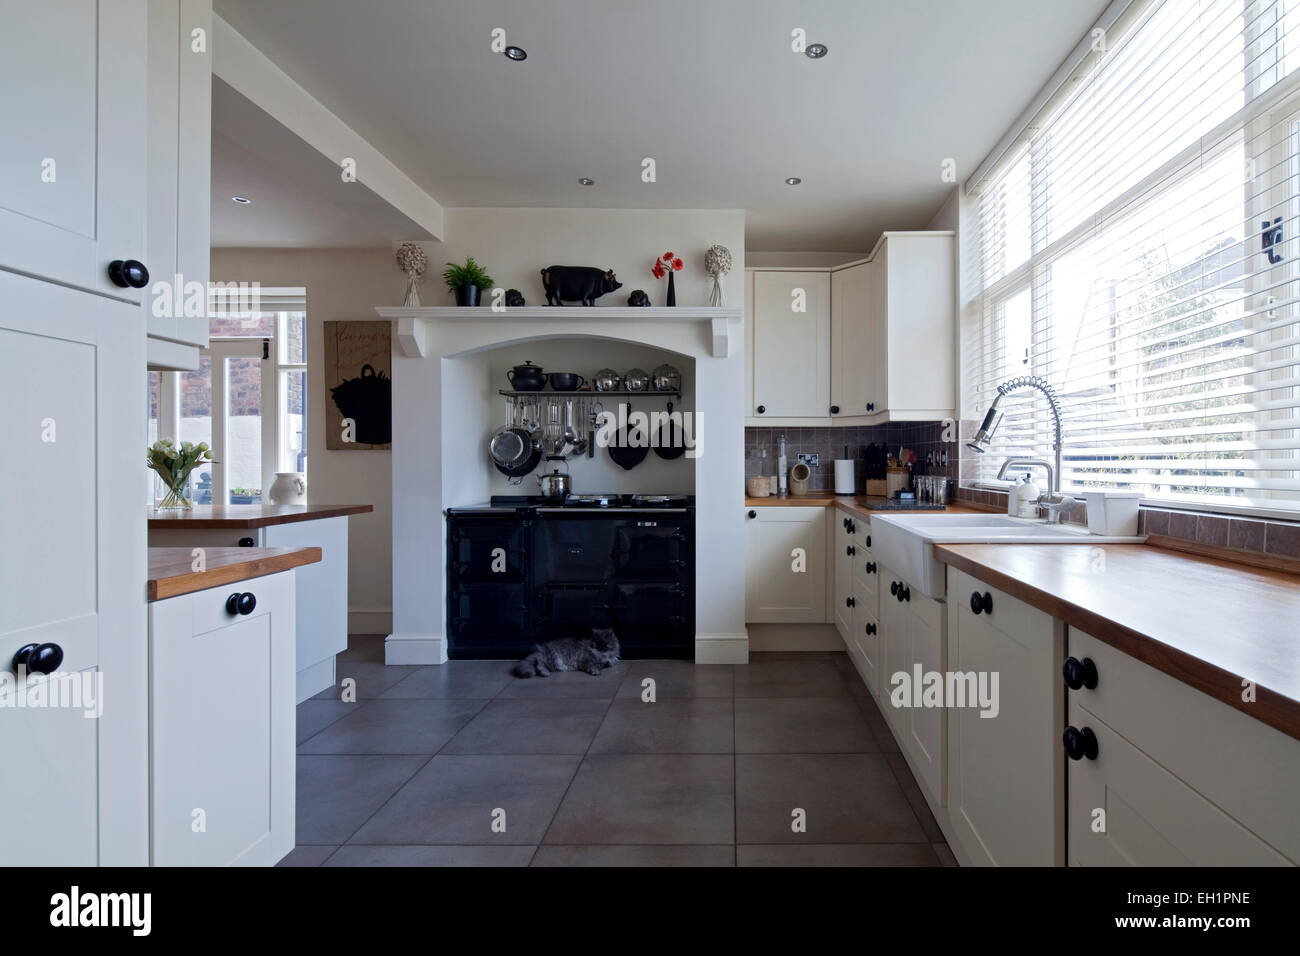 Modern Country Style Kitchen Cabinets Pictures Gallery Modern Country Style Kitchen In Macclesfield Townhouse Cheshire Stock